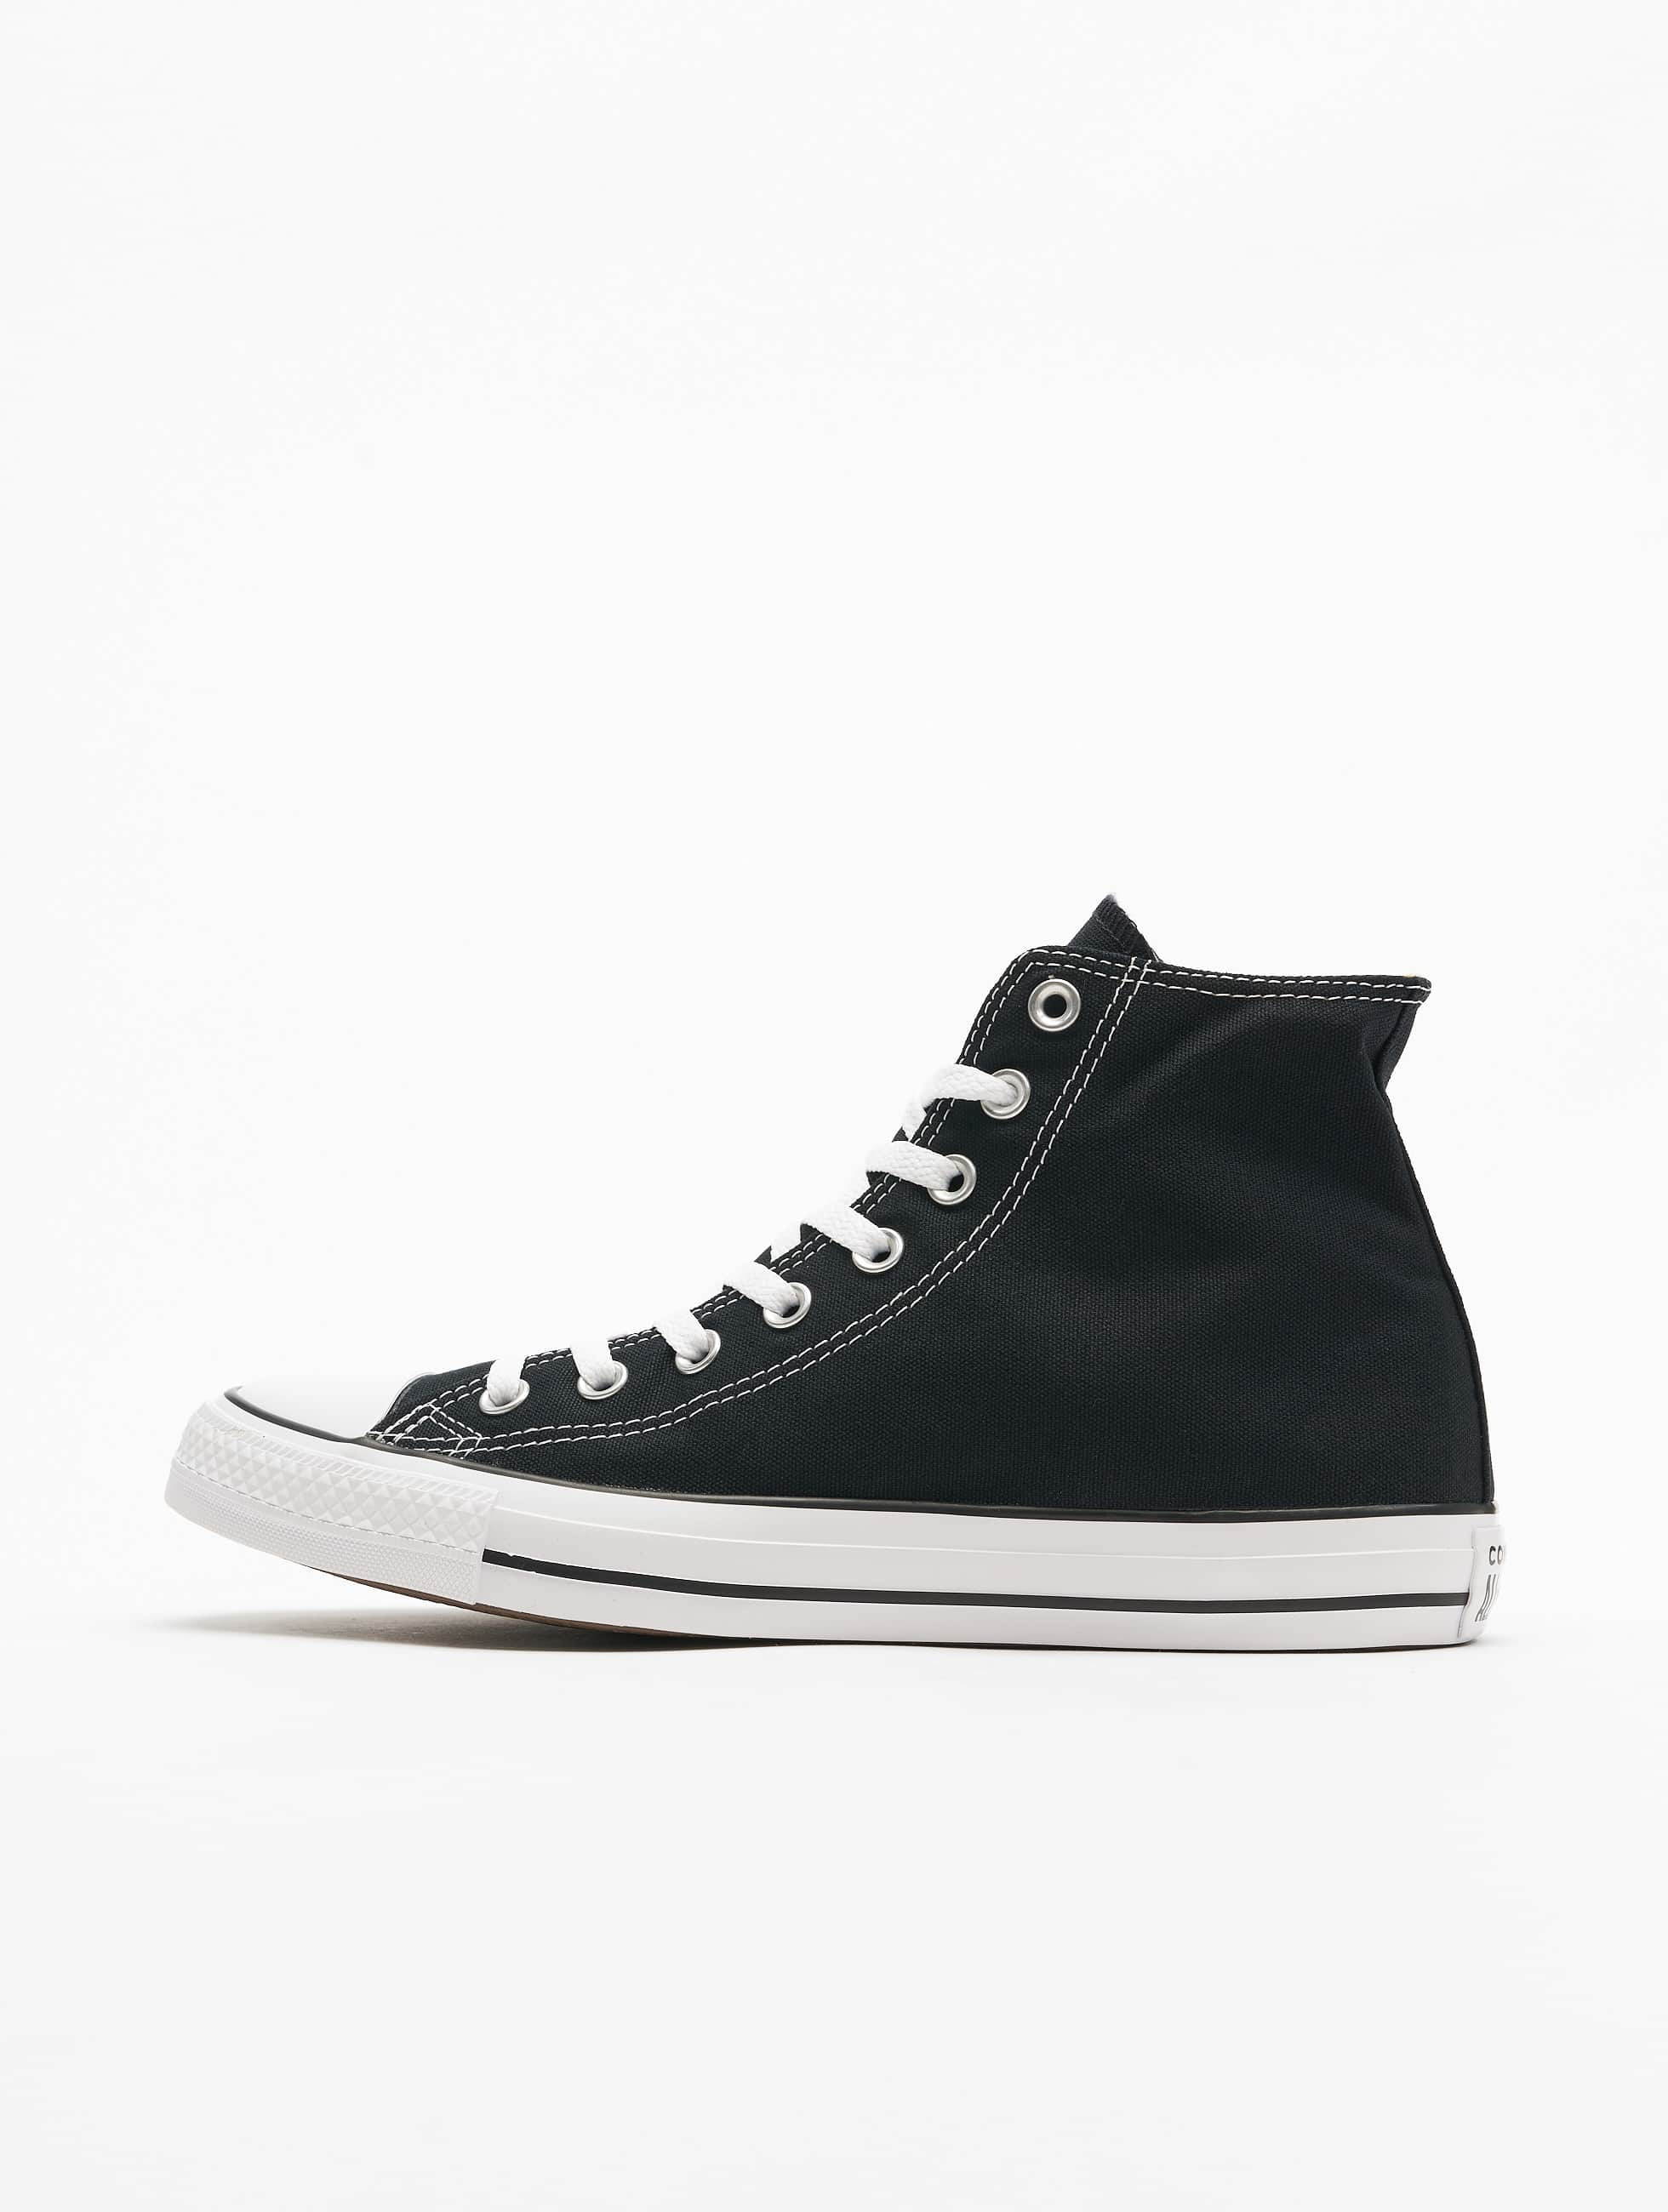 converse all star chucks schwarz herren kuechenstudio